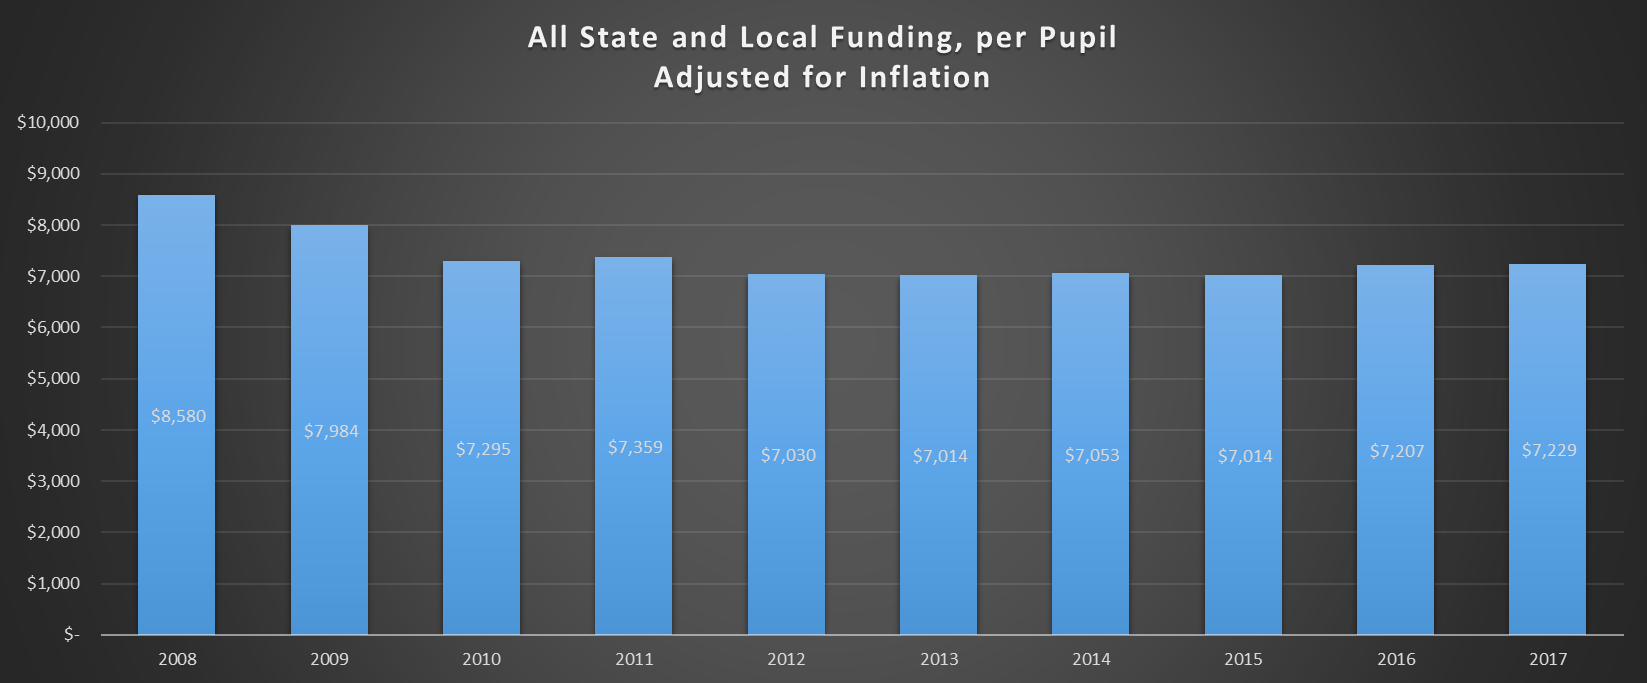 state-and-local-funding-adjusted-for-inflation-v1